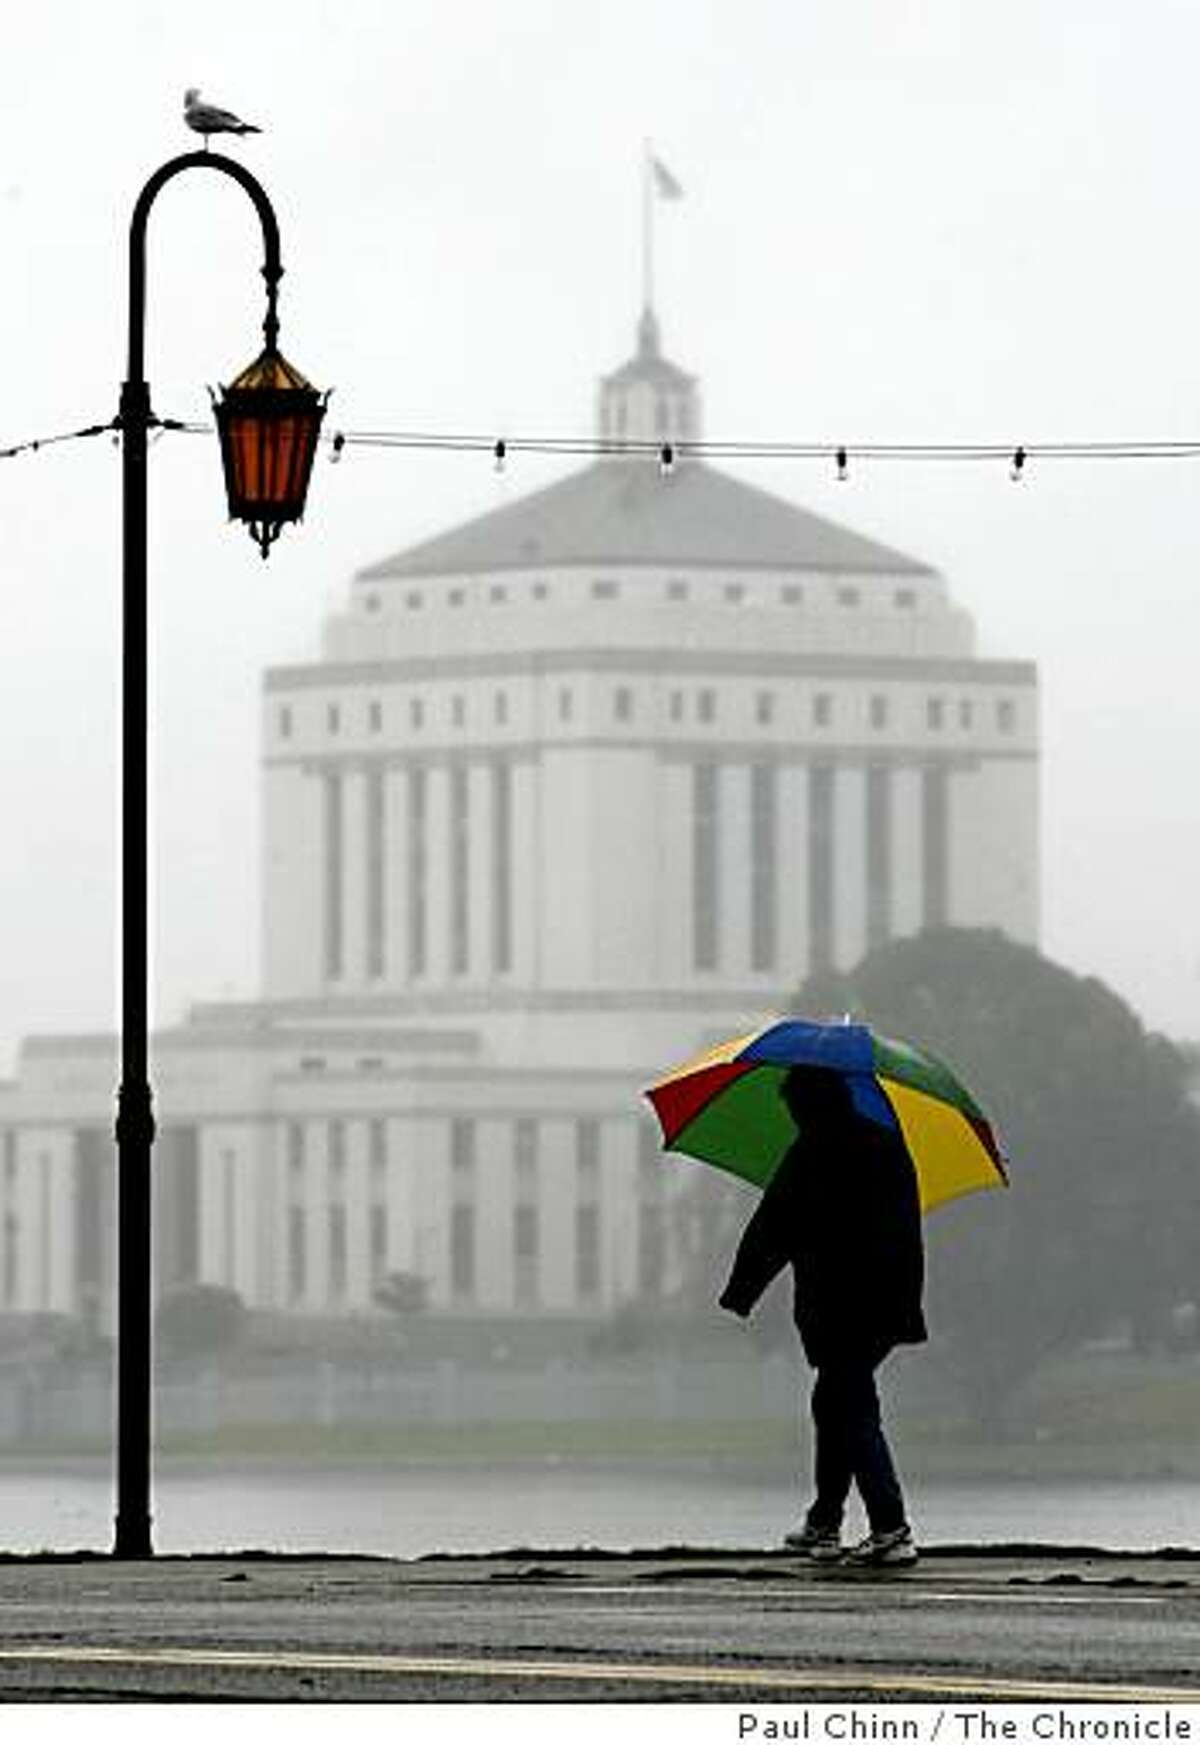 An umbrella-toting woman walks along Lake Merritt not far from the Alameda County Courthouse in Oakland, Calif.